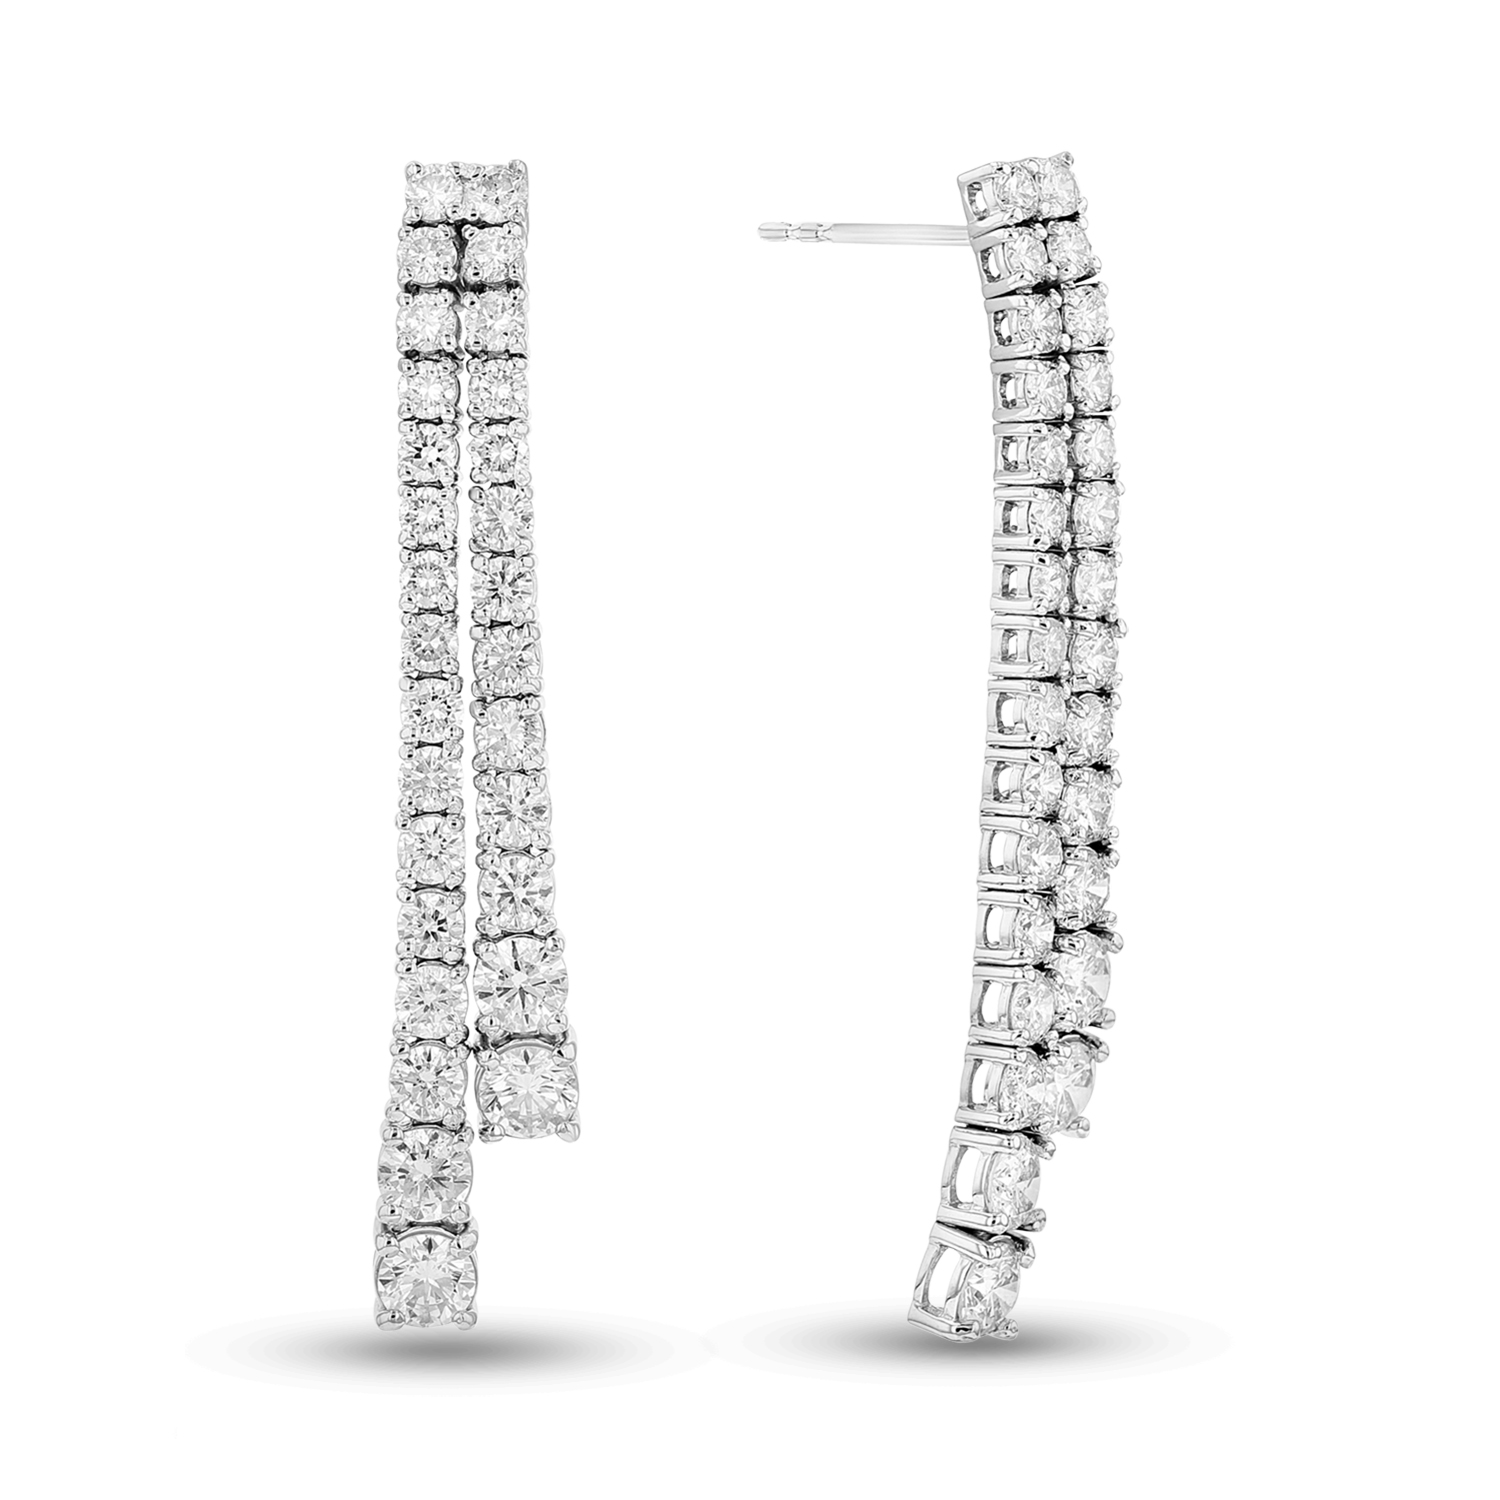 View 4.00ctw Diamond Earrings in 14k Gold